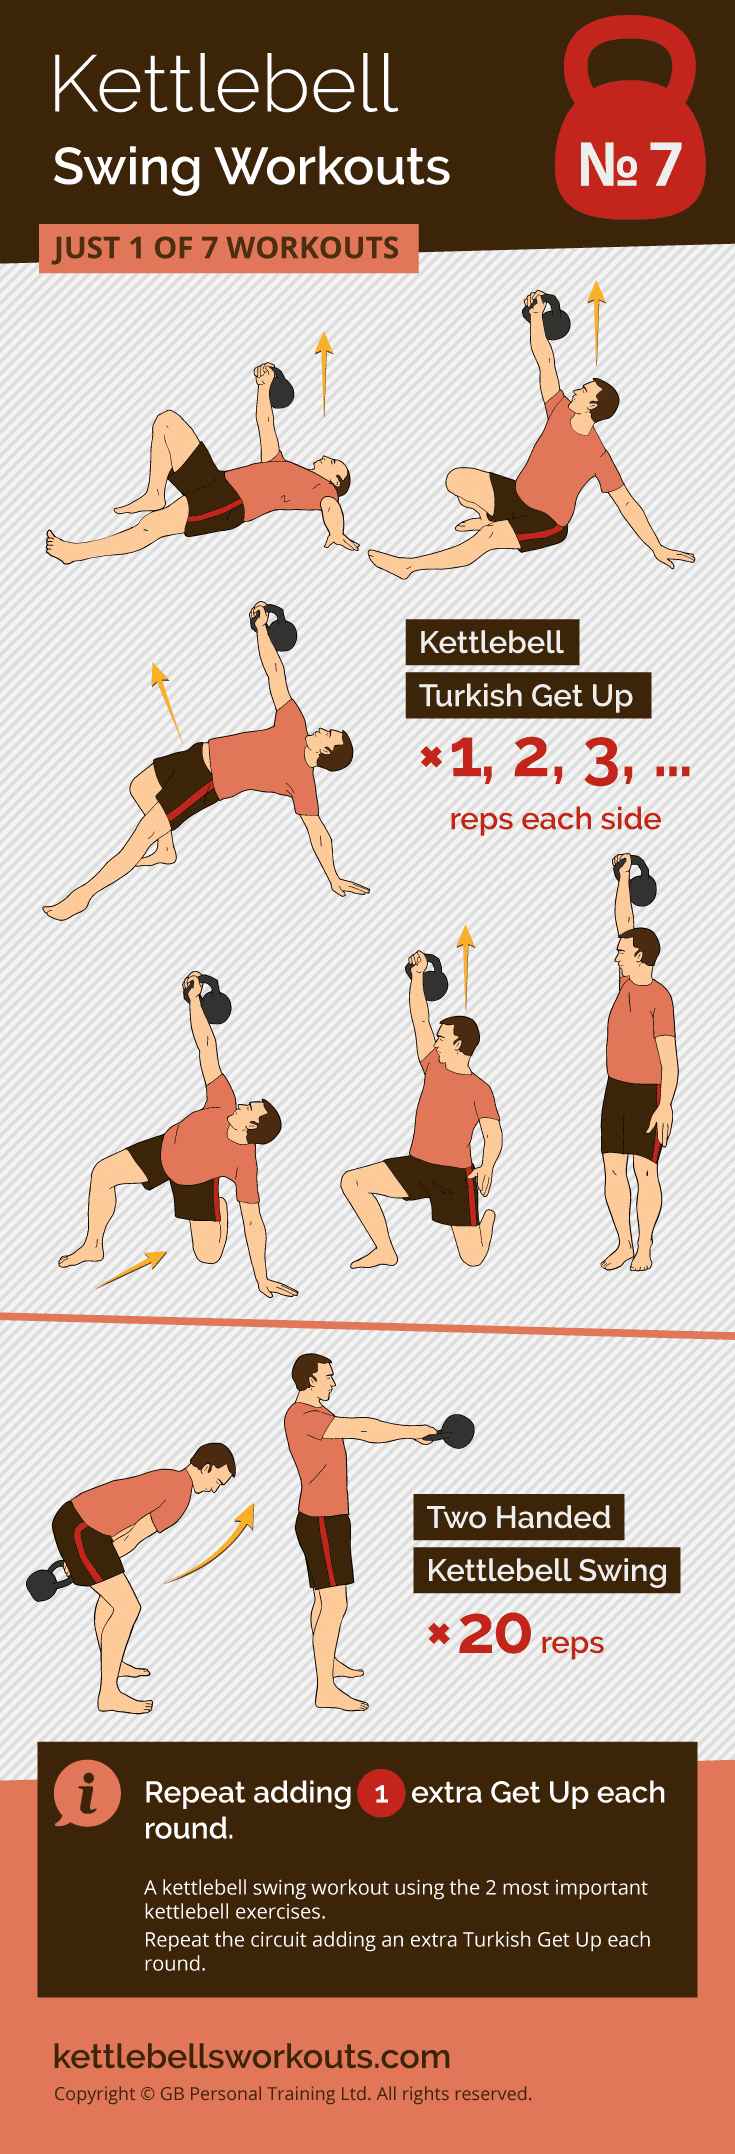 Kettlebell Swing Workout No.7